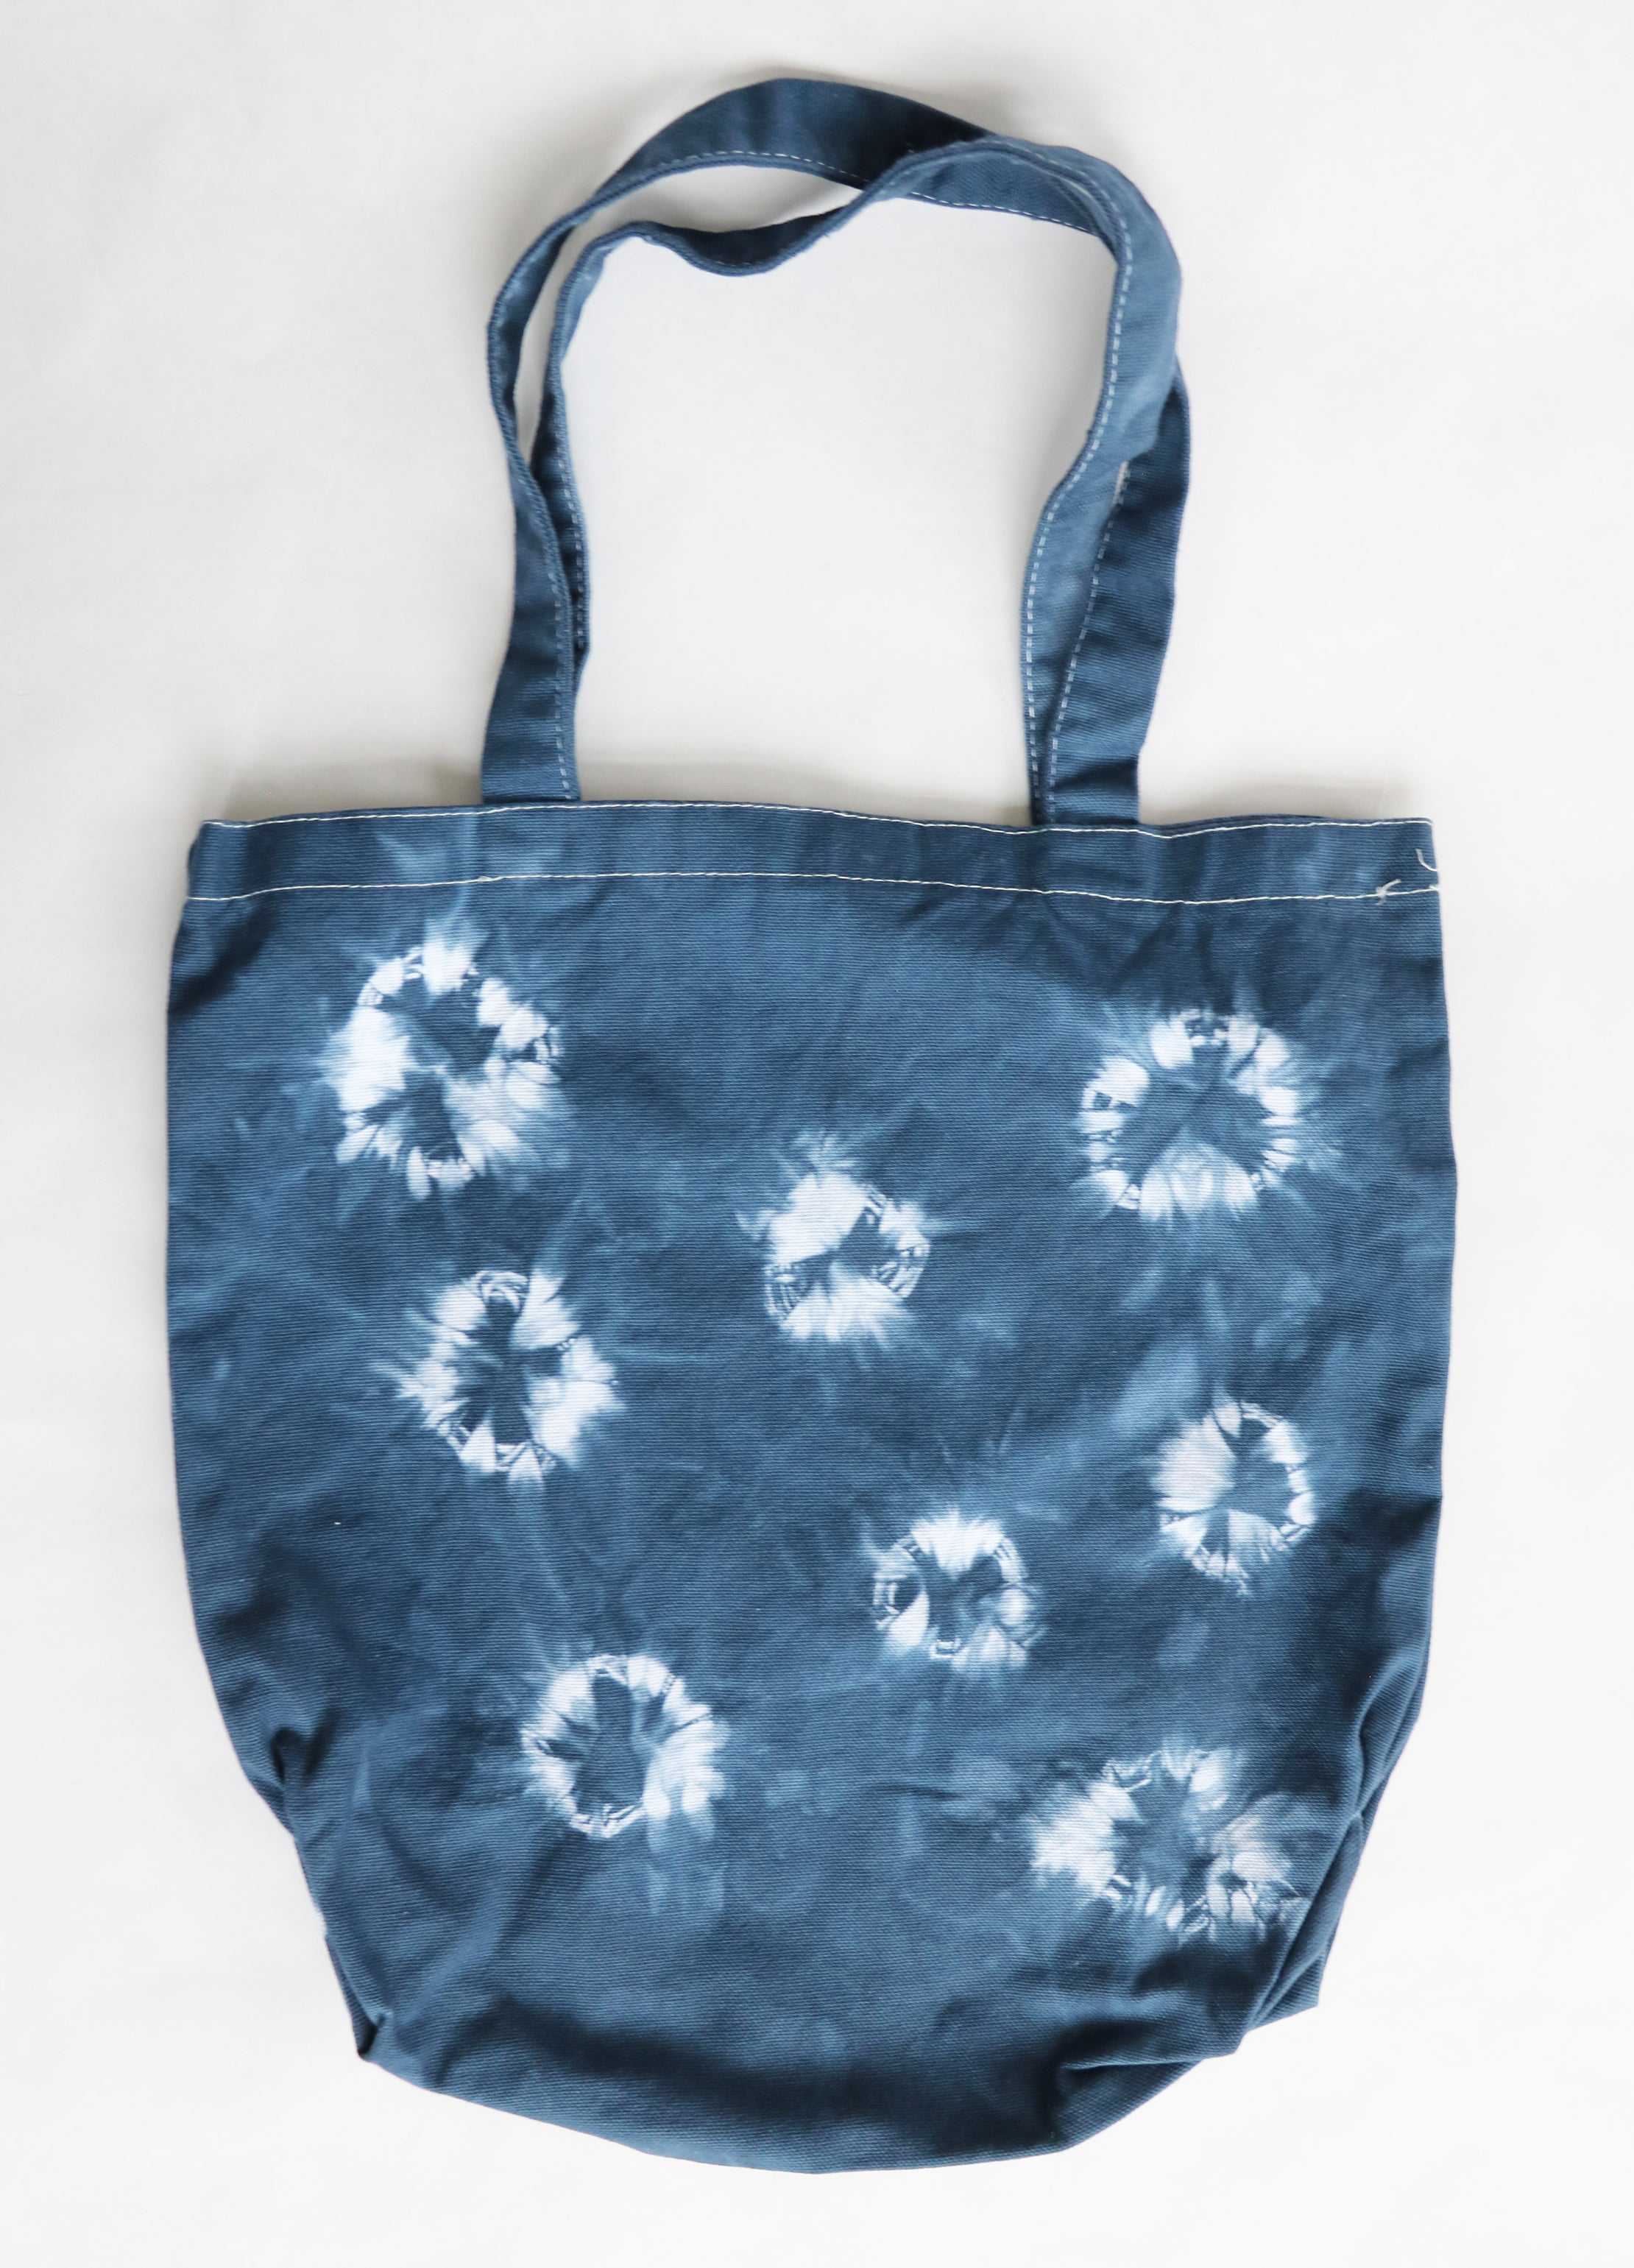 Blueberry Patch Tote